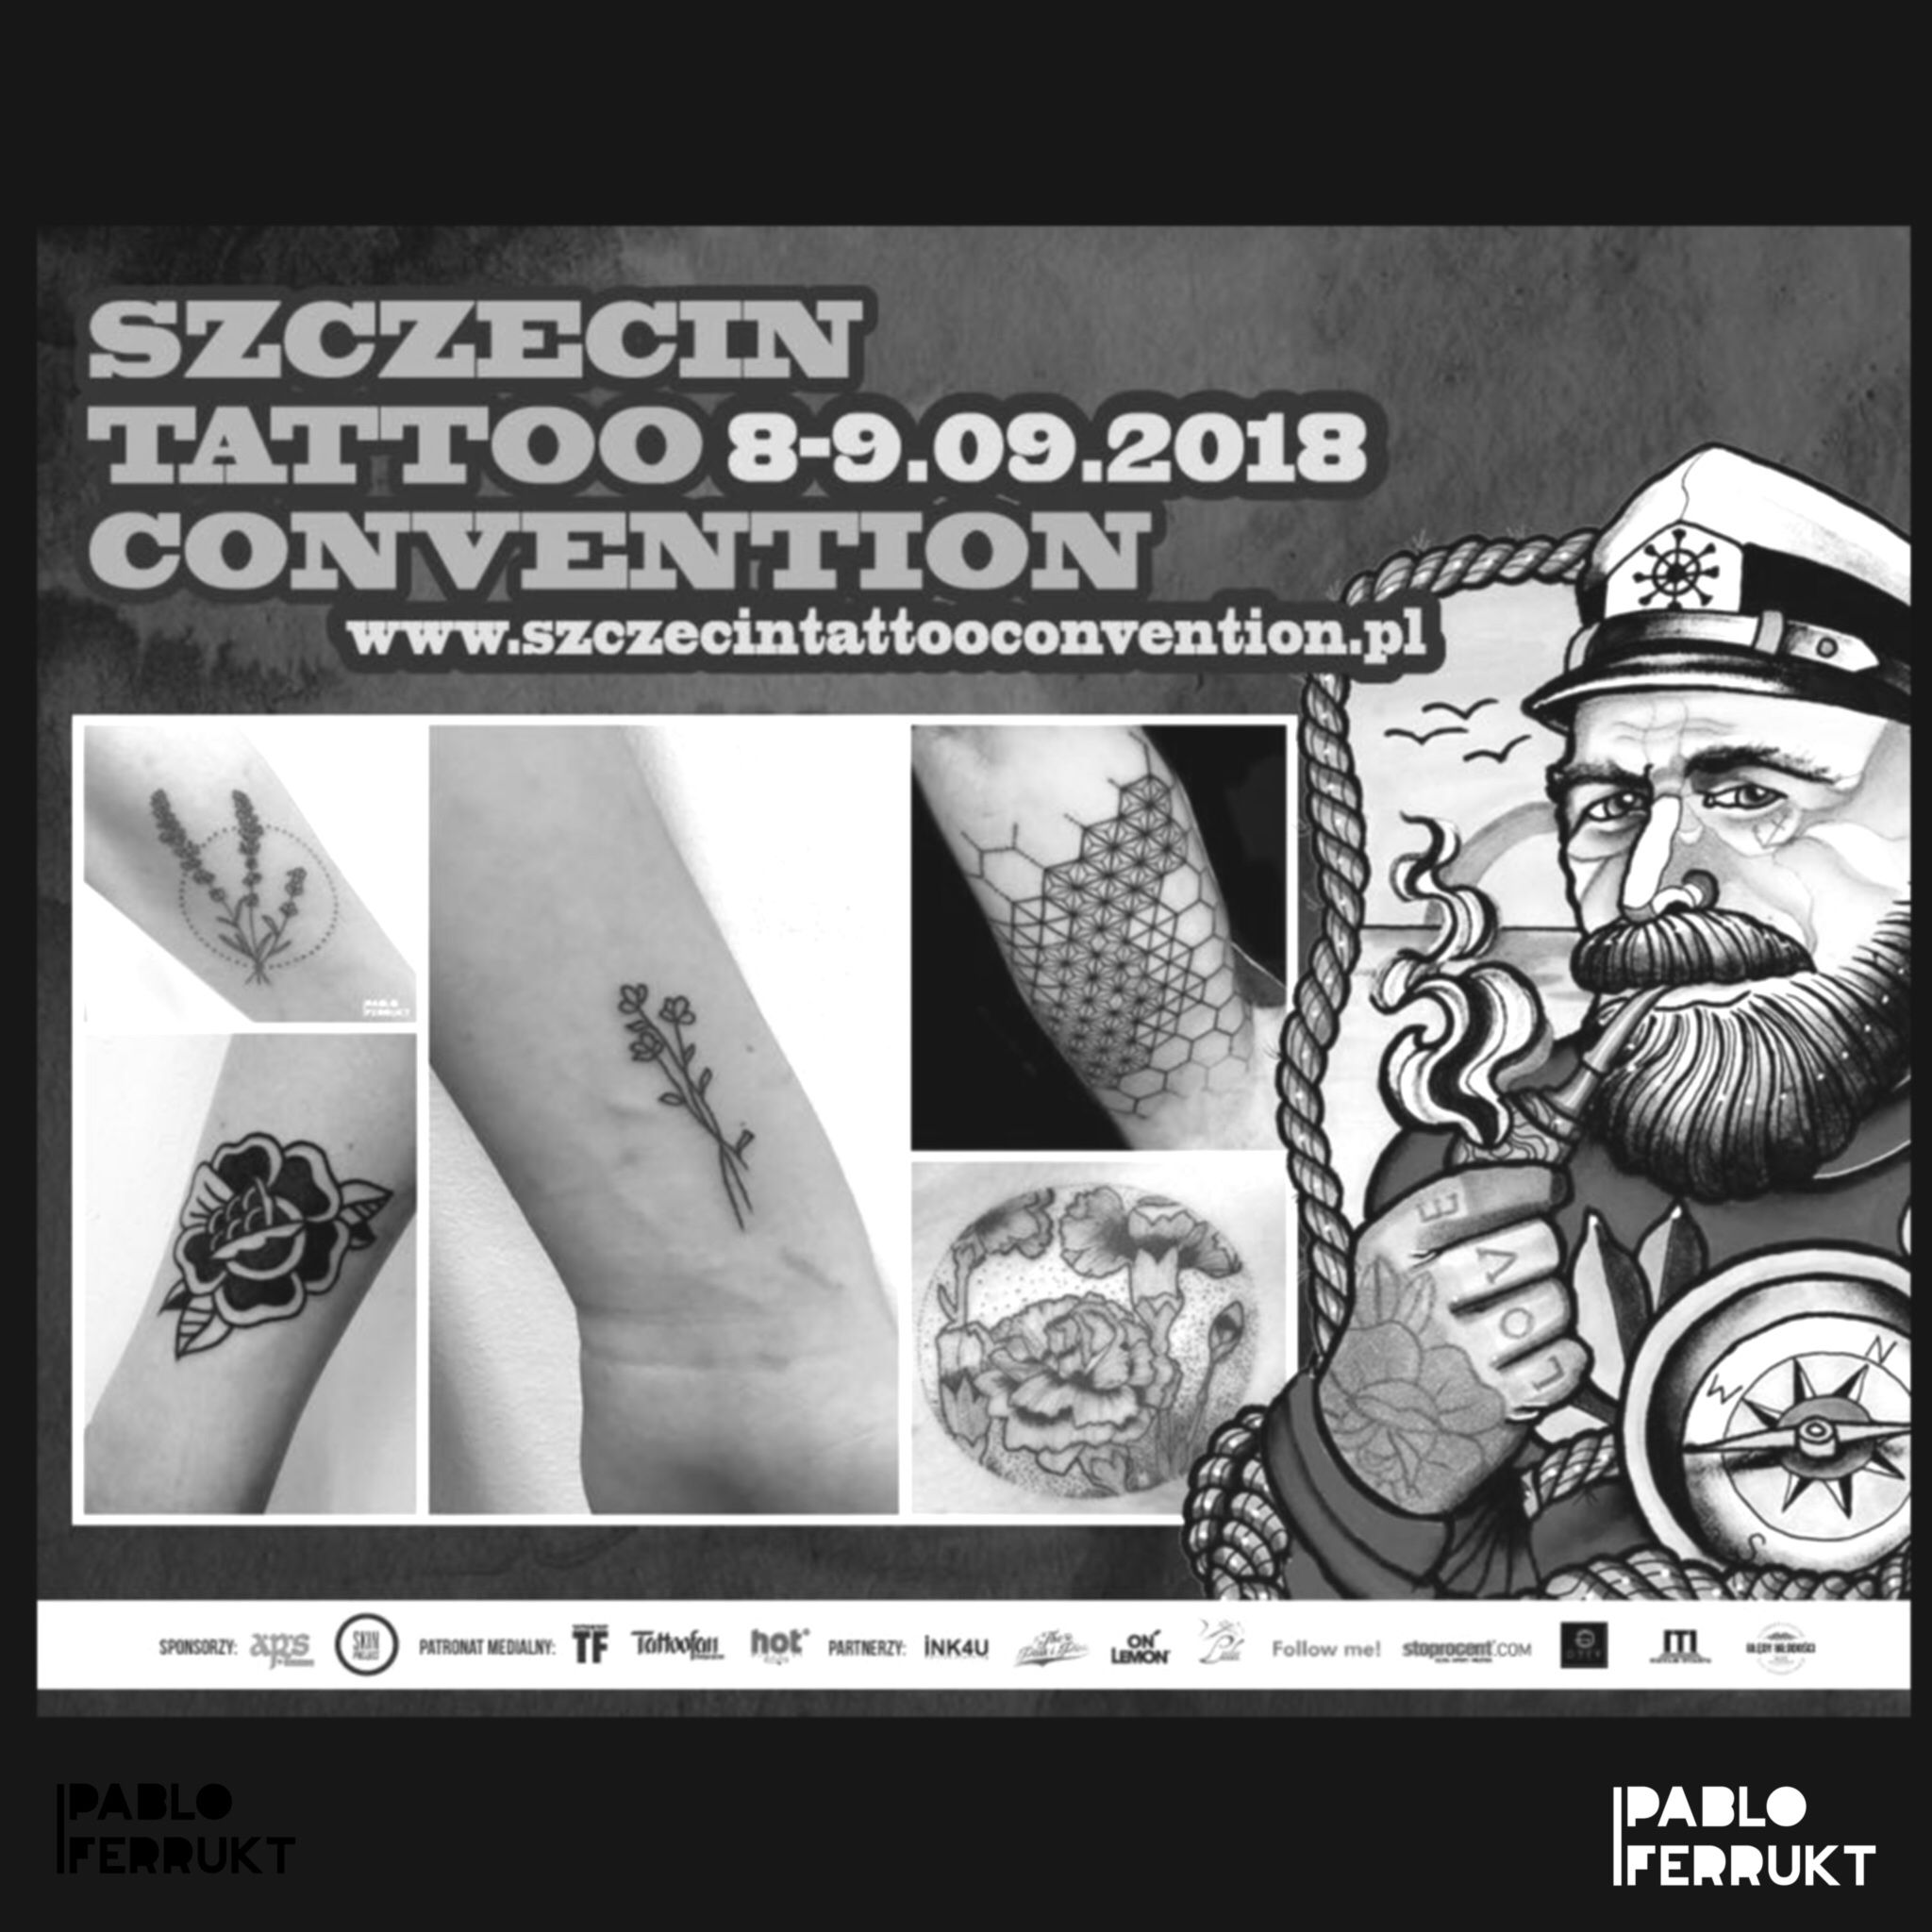 I will be attending the @szczecintattoo convention 08-09.09 (Stettin, Poland) Write me your ideas at pabloferrukt@icloud.com or just pick one of my flashes. I will give special price for people who wants big tattoos.  I am till the 19.08 at @lobster.tattoo, (Split, Croatia) ⠀ 📍11-15.09 at @taetowiermanufaktur, (Wuppertal, Deutschland) ⠀ Resident in Berlin at @amor_de_madre_berlin. ⠀ #tattooconvention.⠀ .⠀ .⠀ .⠀  #tattoos #tat #ink #inked #tattooed #tattoist #art #design #instaart #geometrictattoos #walkindwelcomed #tatted #instatattoo #bodyart #tatts #tats #amazingink #tattedup #inkedup⠀ #berlin #berlintattoo #poland #stettin #berlintattoos #tattooflash #szczecin  #wuppertal #splitcroatia⠀